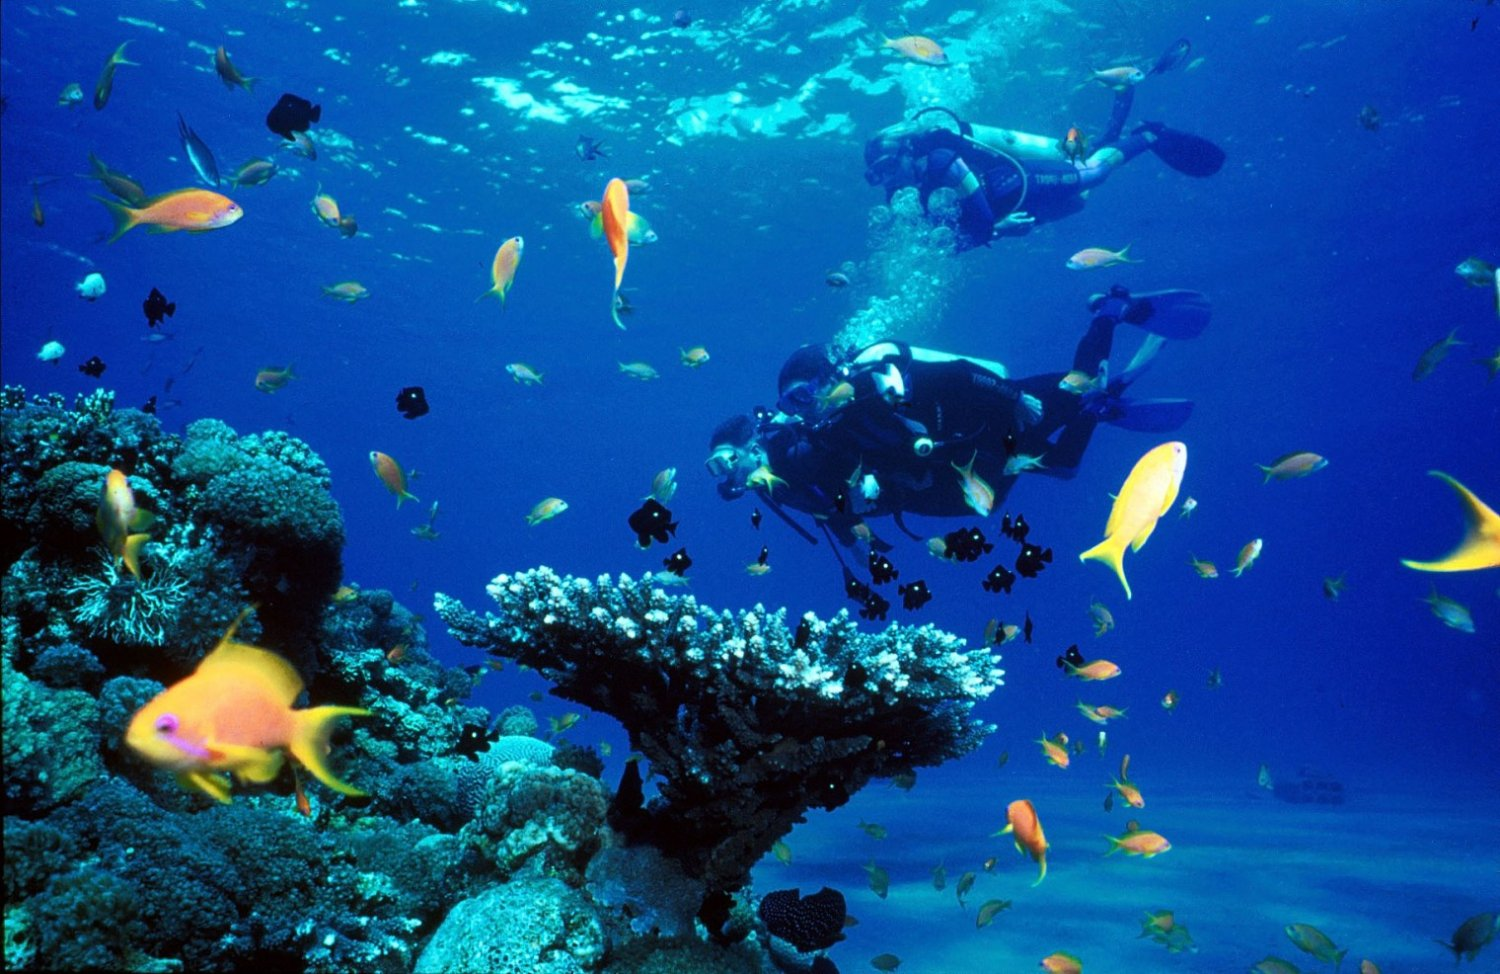 Top 3 Scuba Diving Spots In Malta